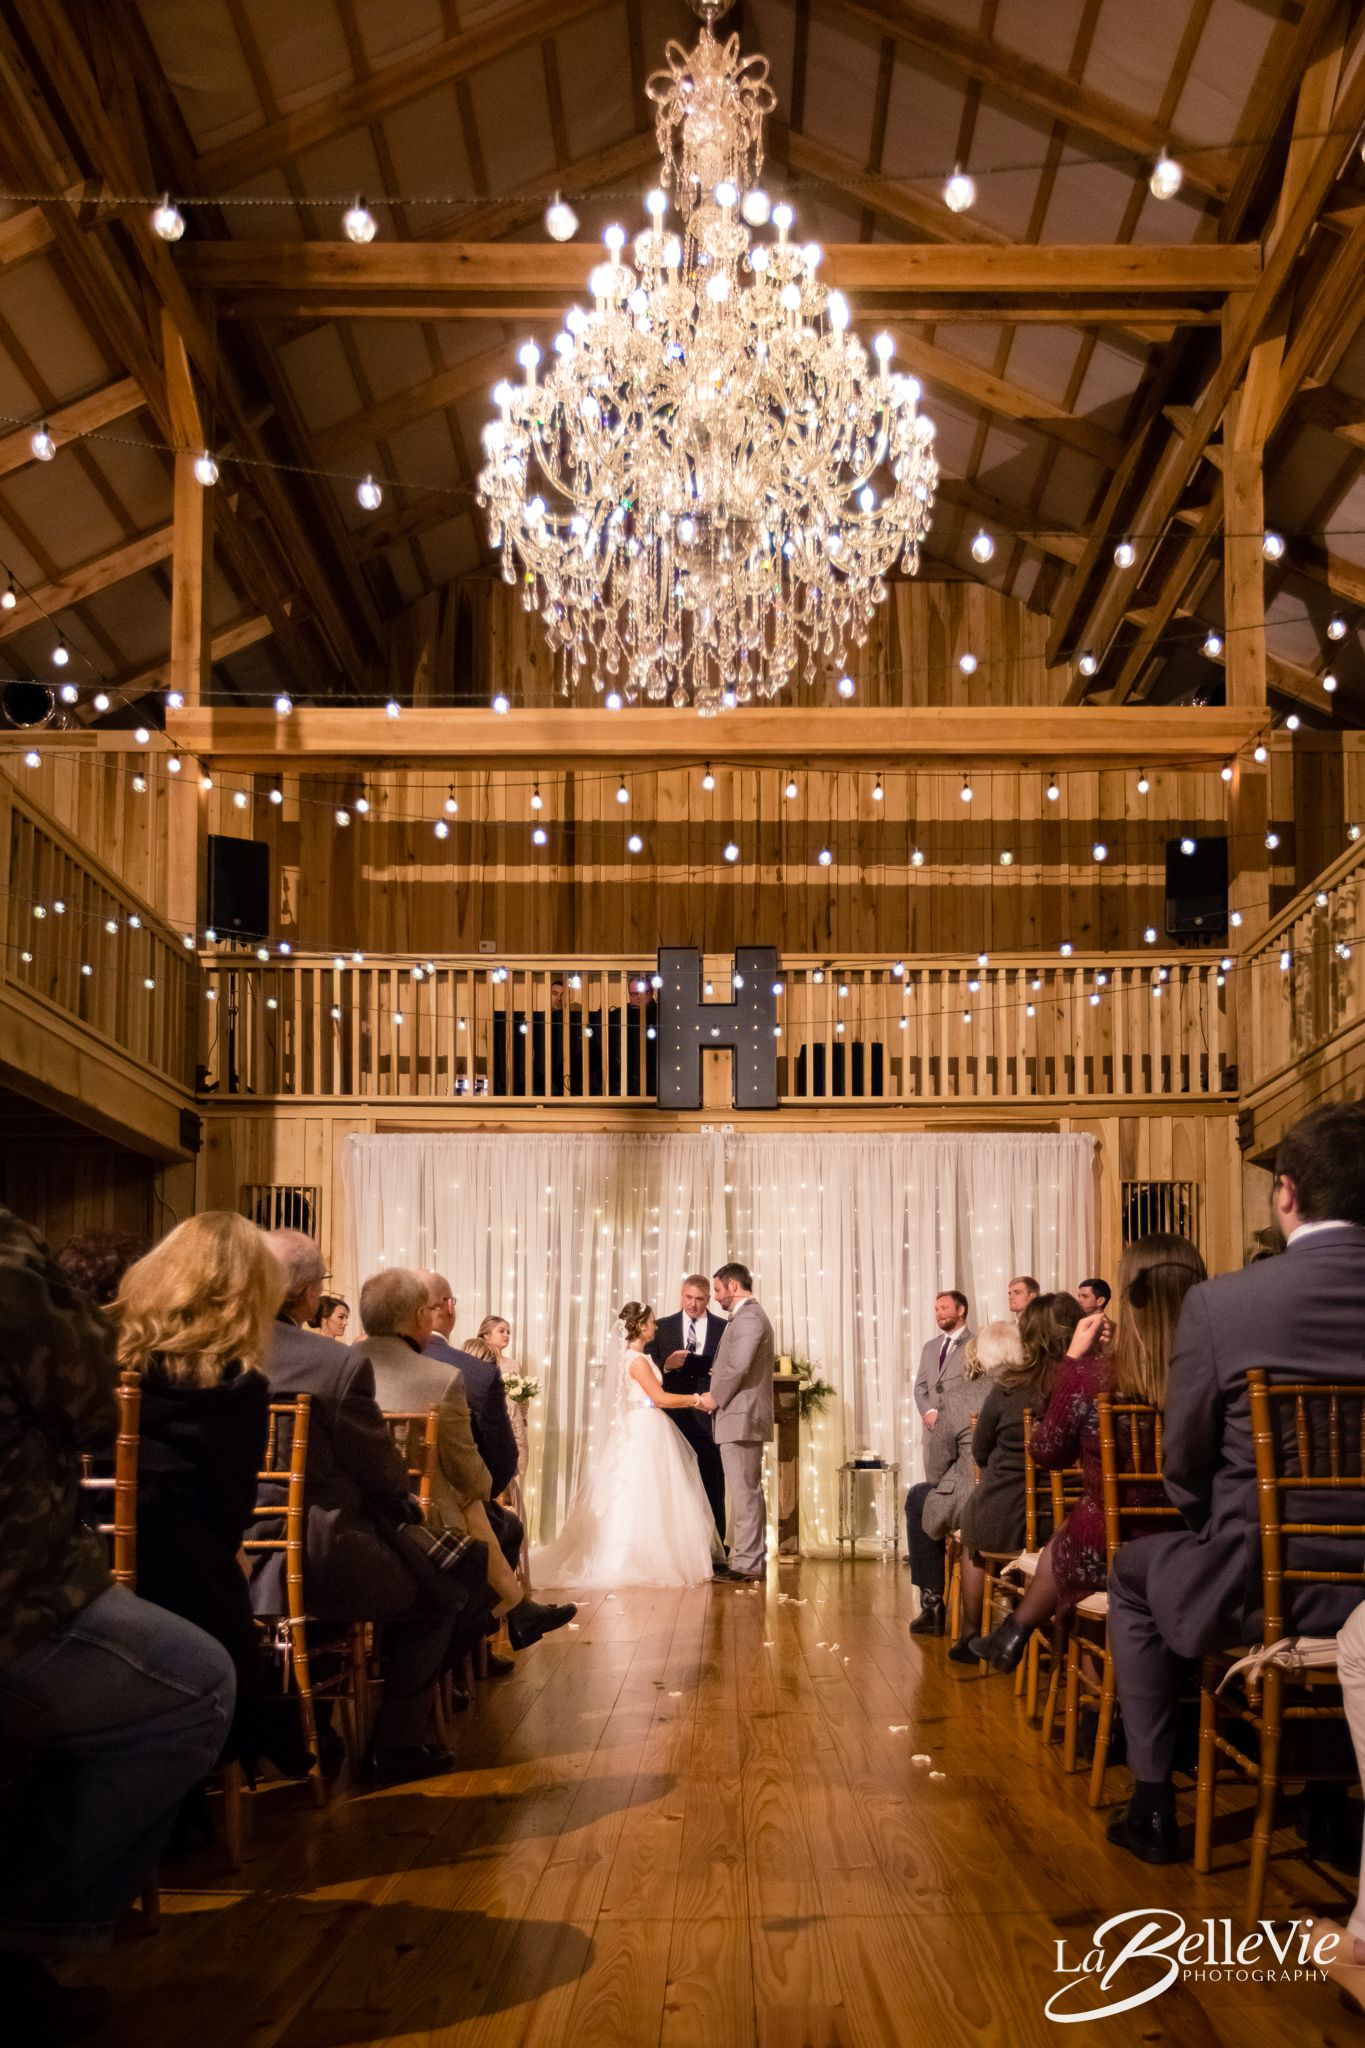 Mid Wedding Ceremony At The Beautiful Bagsby Ranch In Gallatin TN